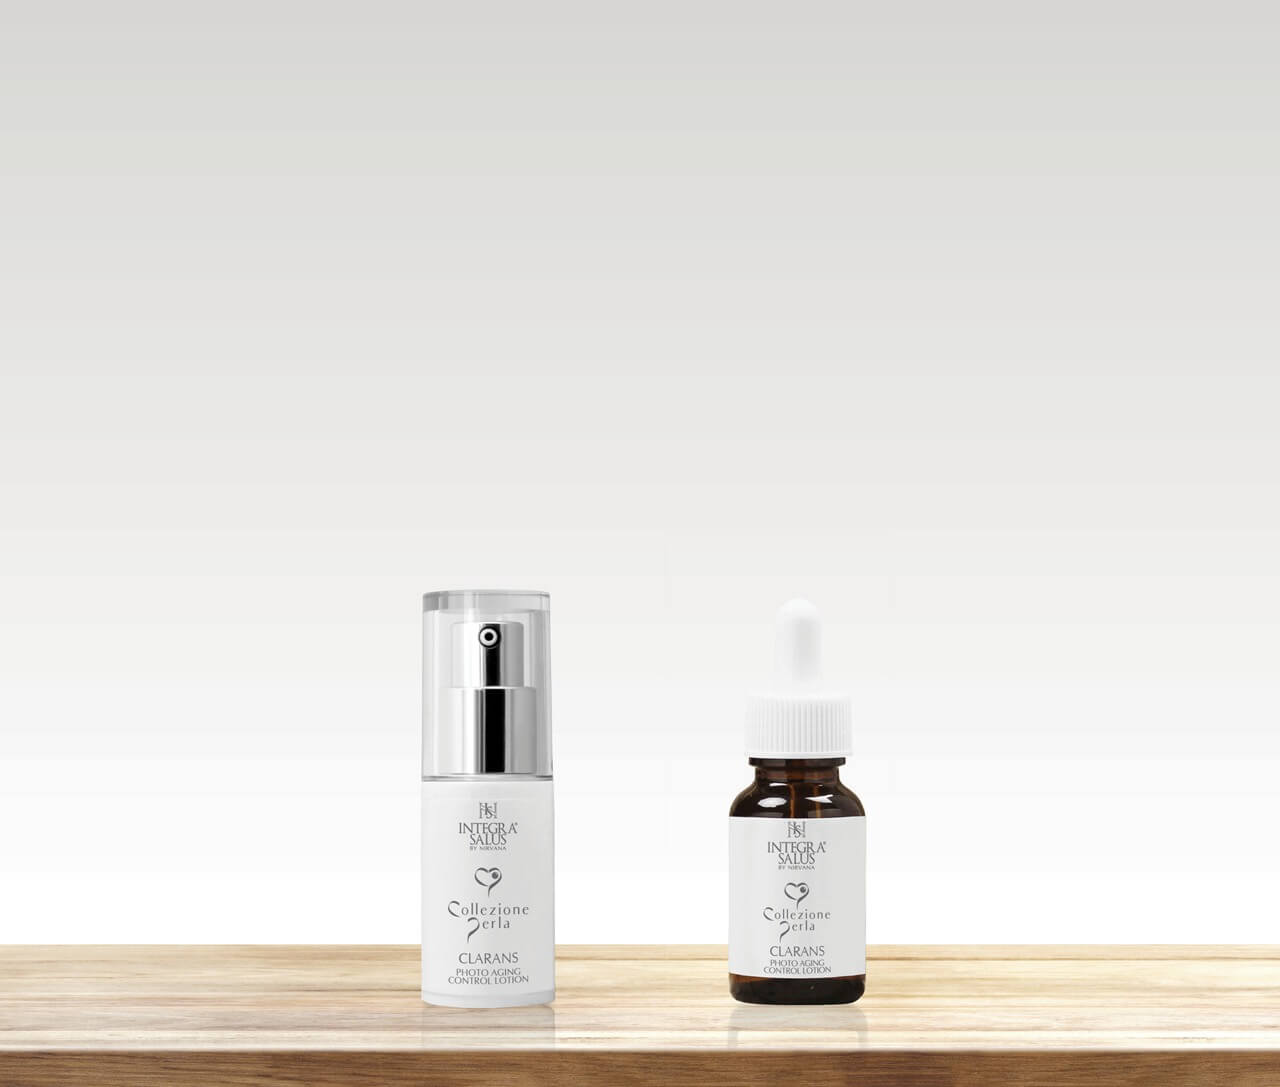 CLARANS Photo aging control lotion